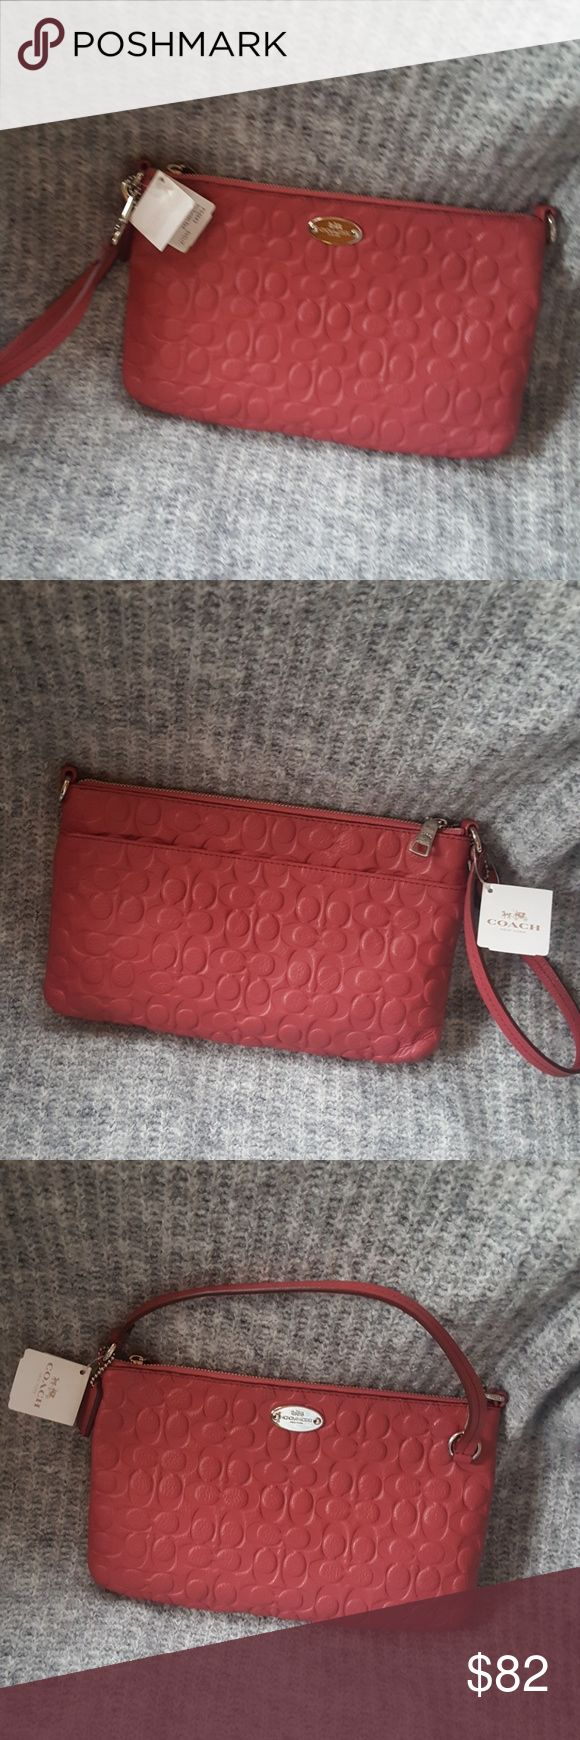 Coach clutch Sunset red Coach clutch.  Card pockets inside.  Pocket on back. Coach Bags Clutches & Wristlets